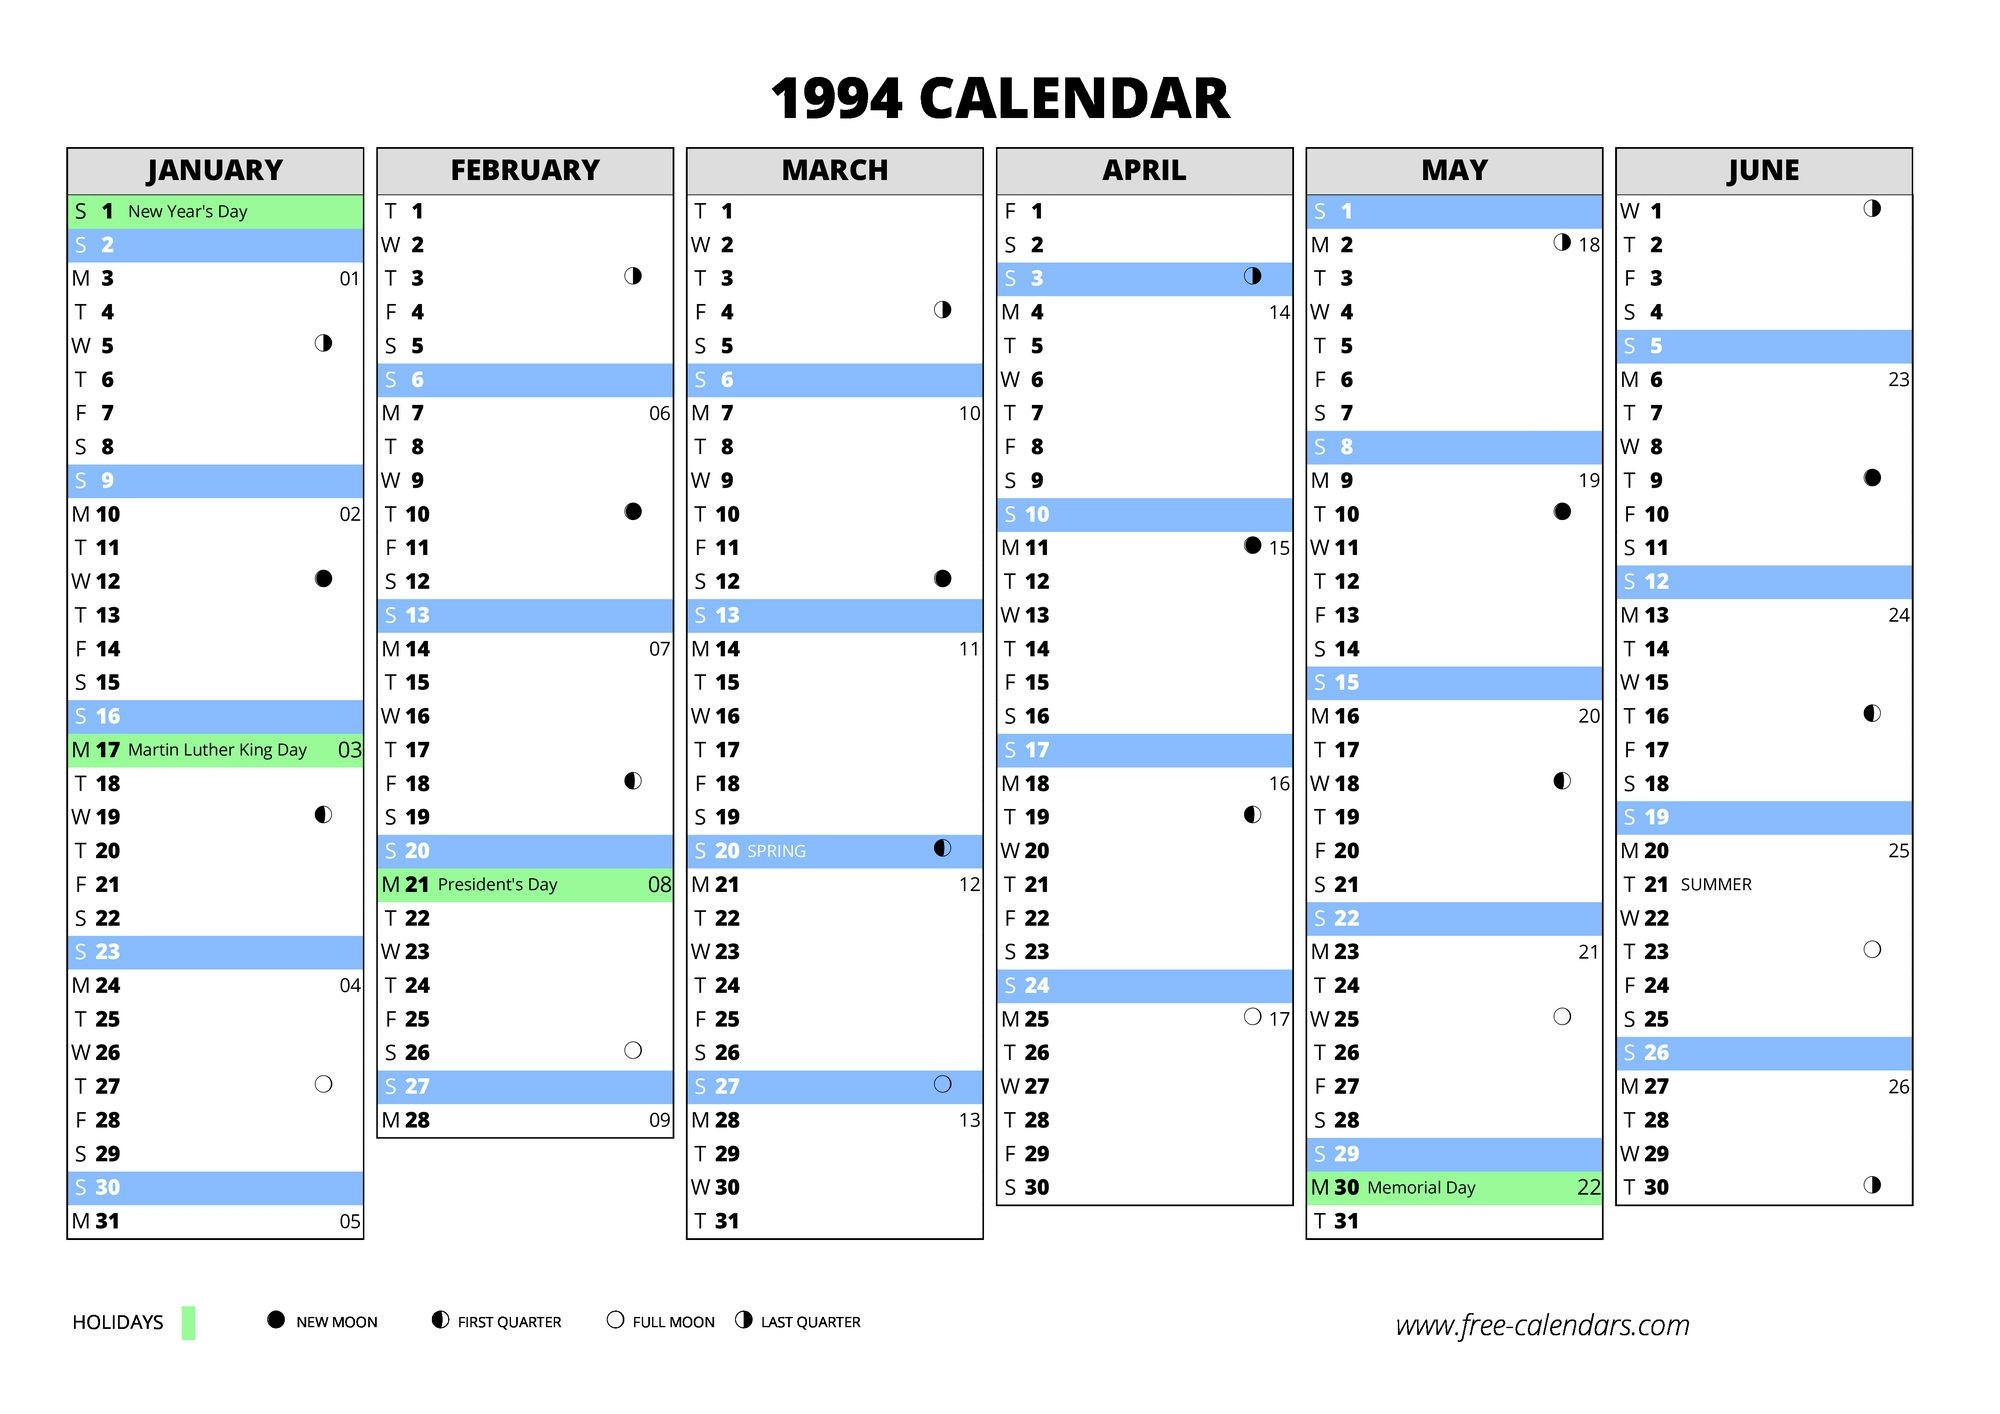 Mathrubhumi Calendar 1994 Pdf Printable Template Incredible December